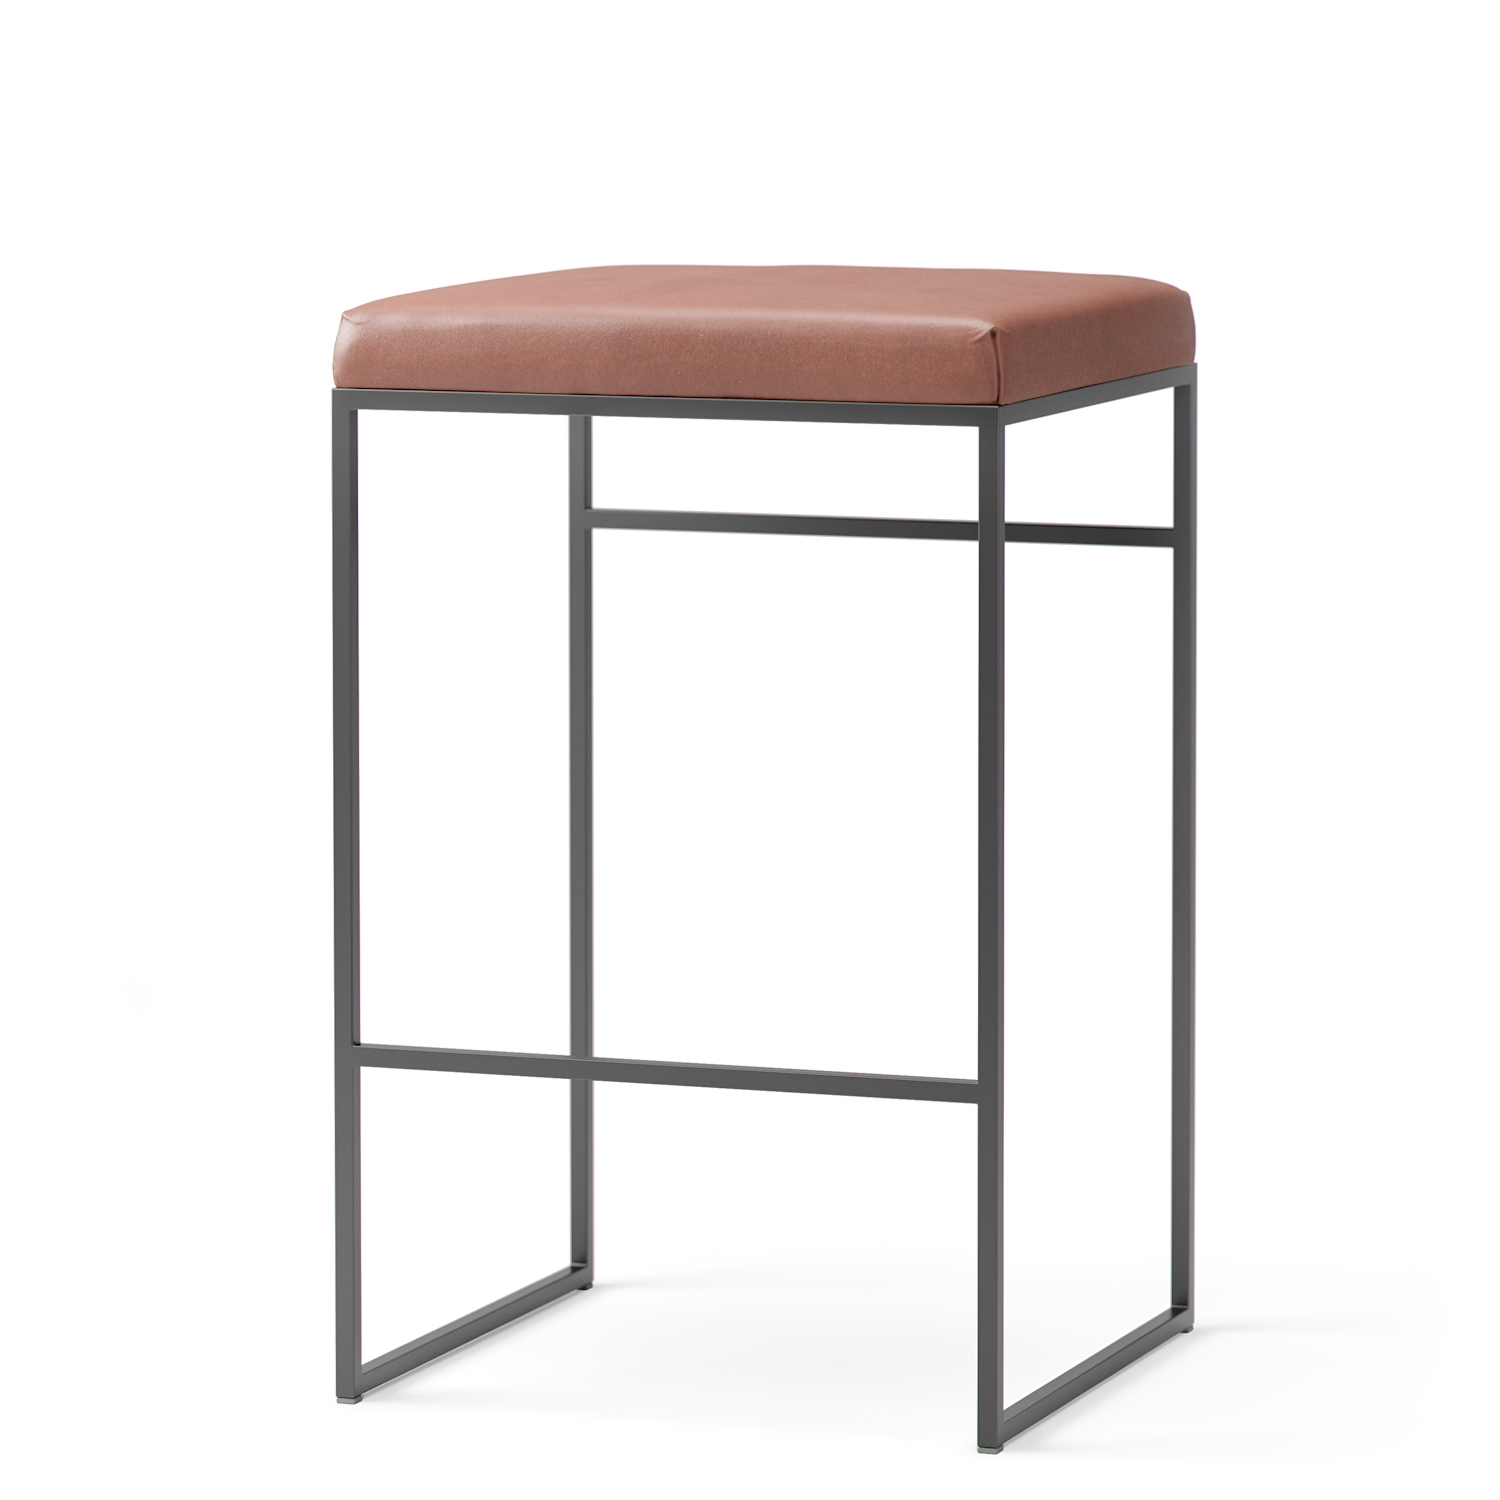 Department-Bar Stool Low Without Backrest, Black / Brown Leather